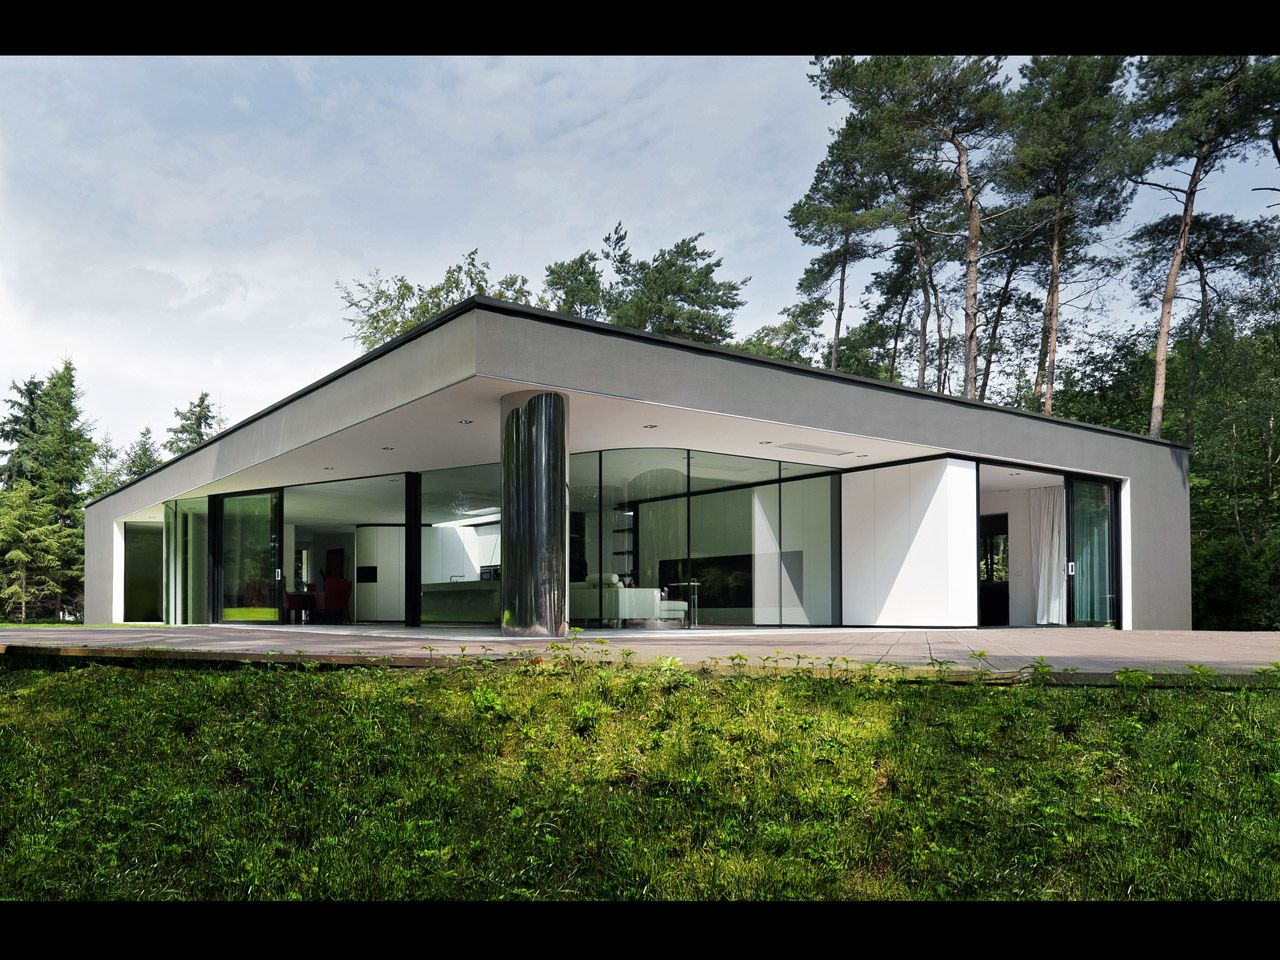 Villa Veth By Modern Villas In Hattem Netherlands